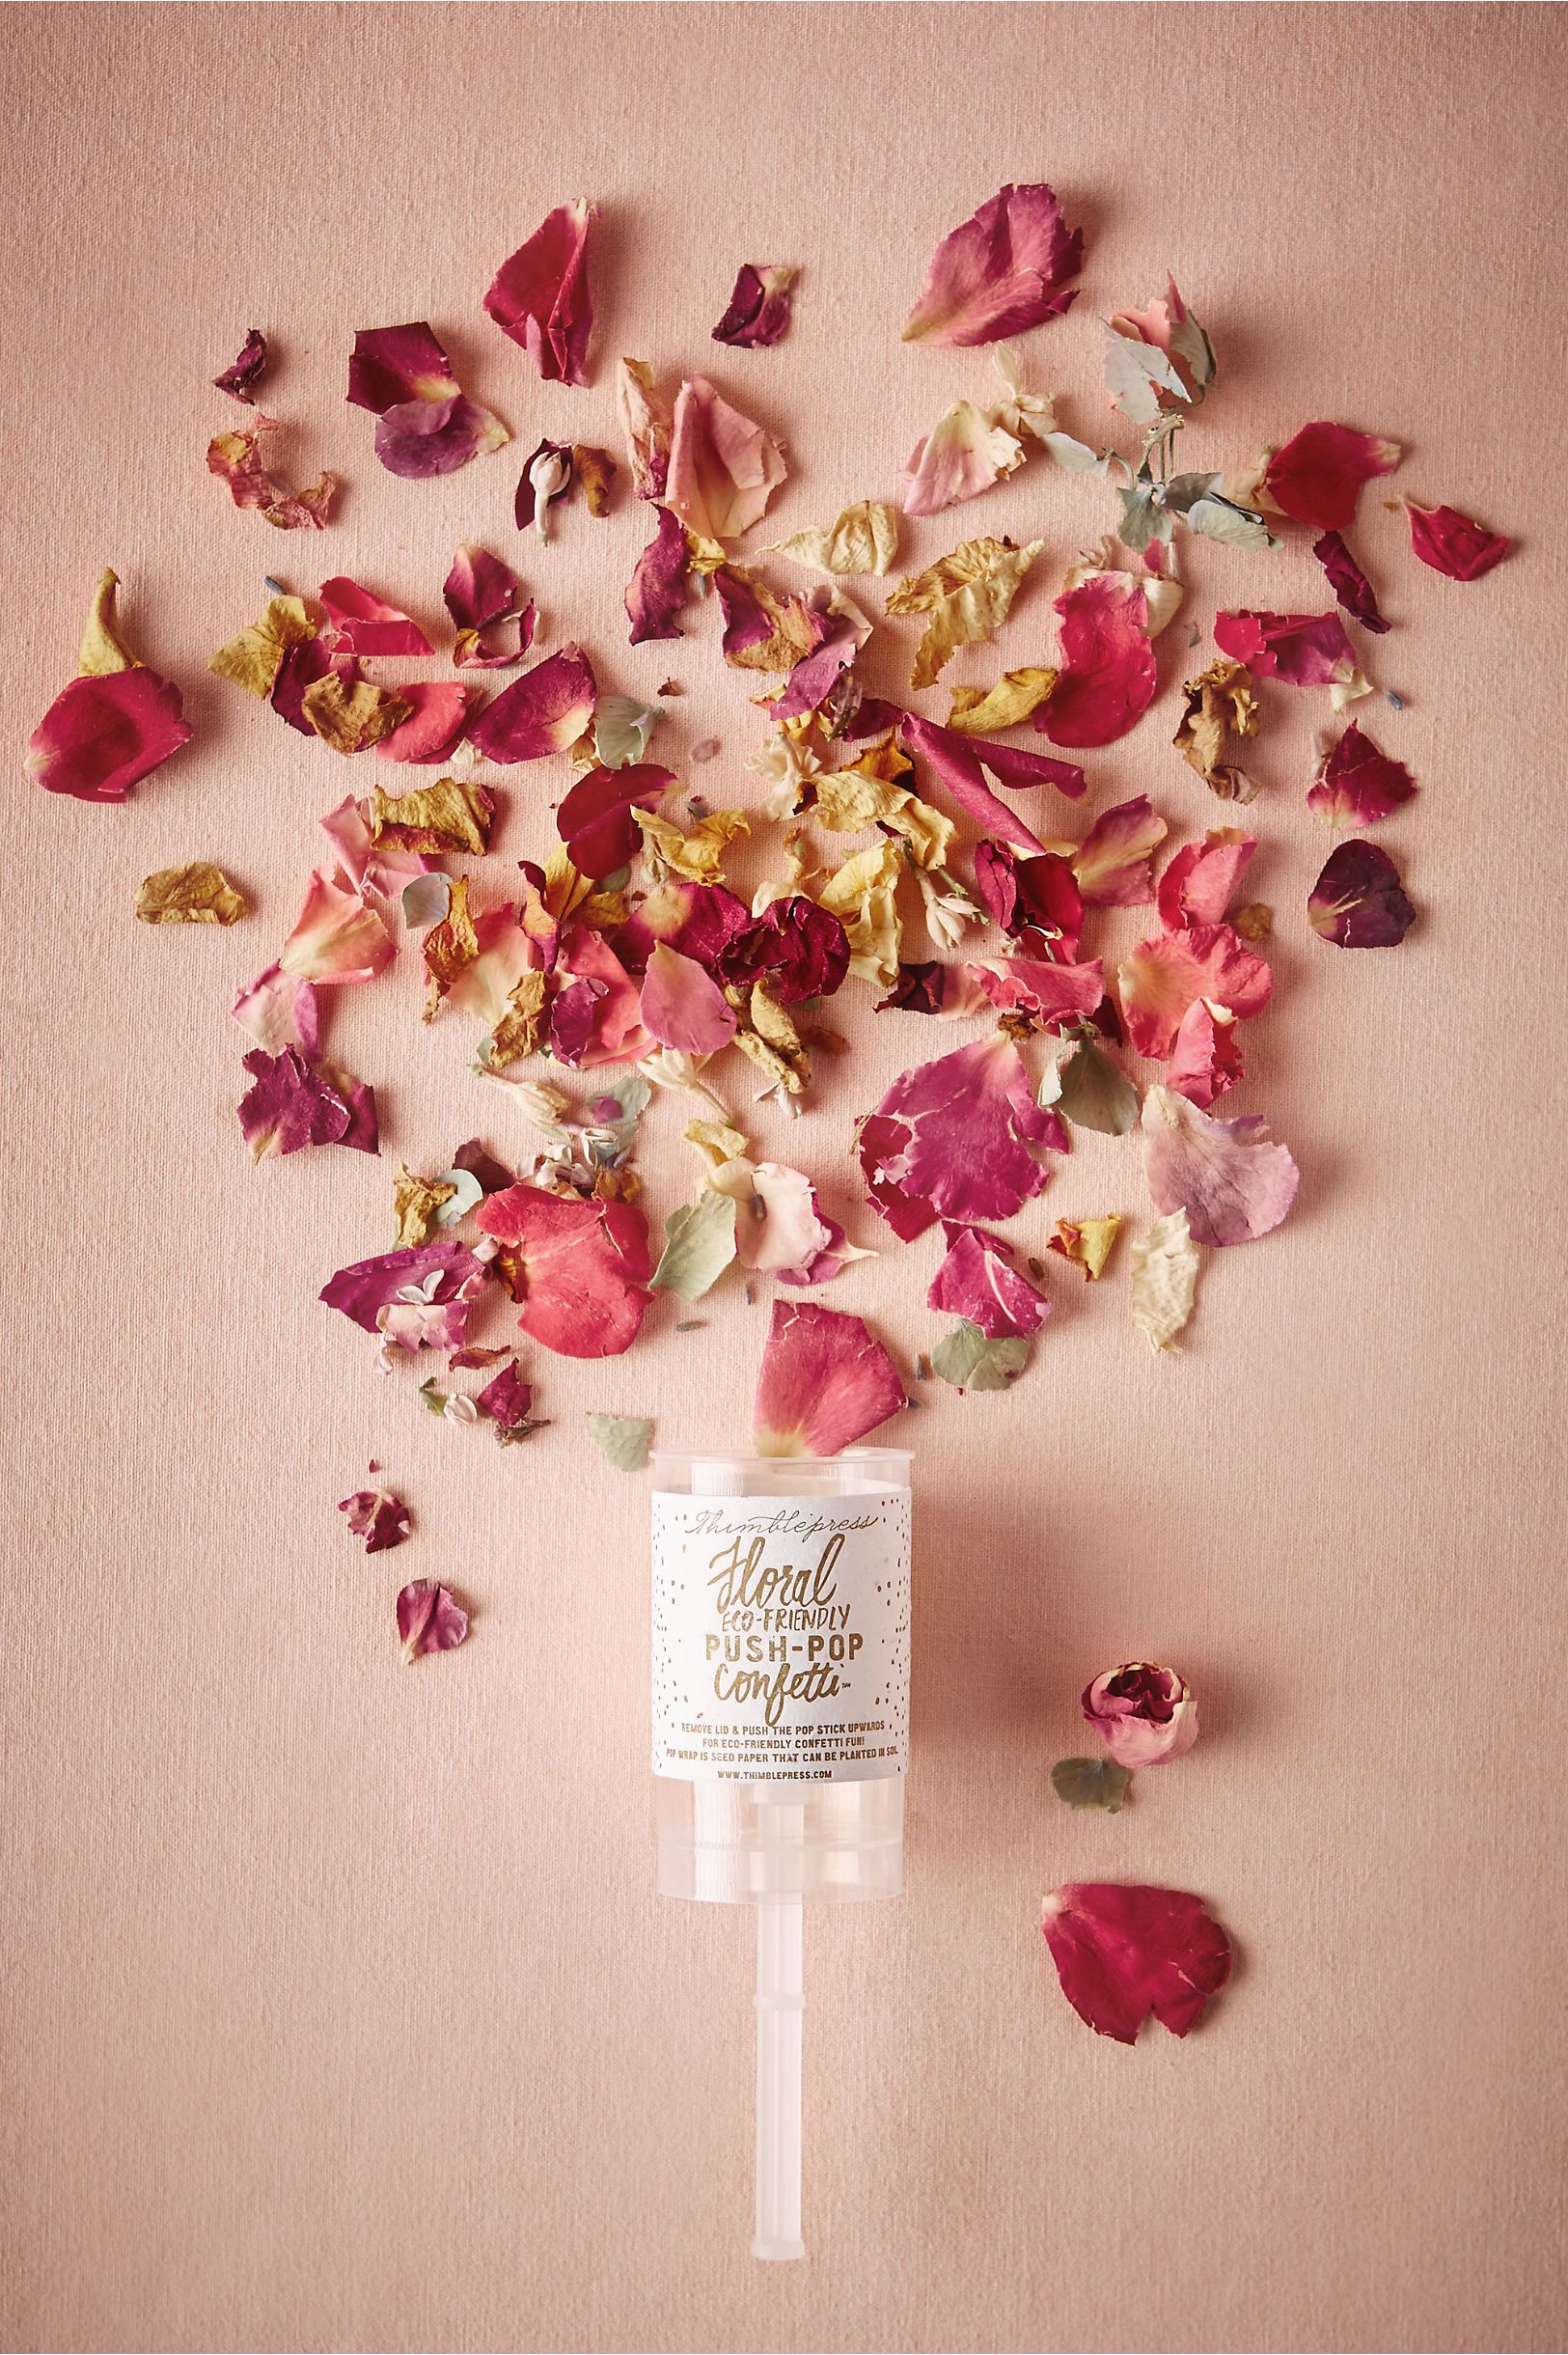 Dried rose petal chinese rose flower rose tea buy rose petal - Have Your Flower Girls Toss Dried Rose Petals In The Air With This Handy Popper